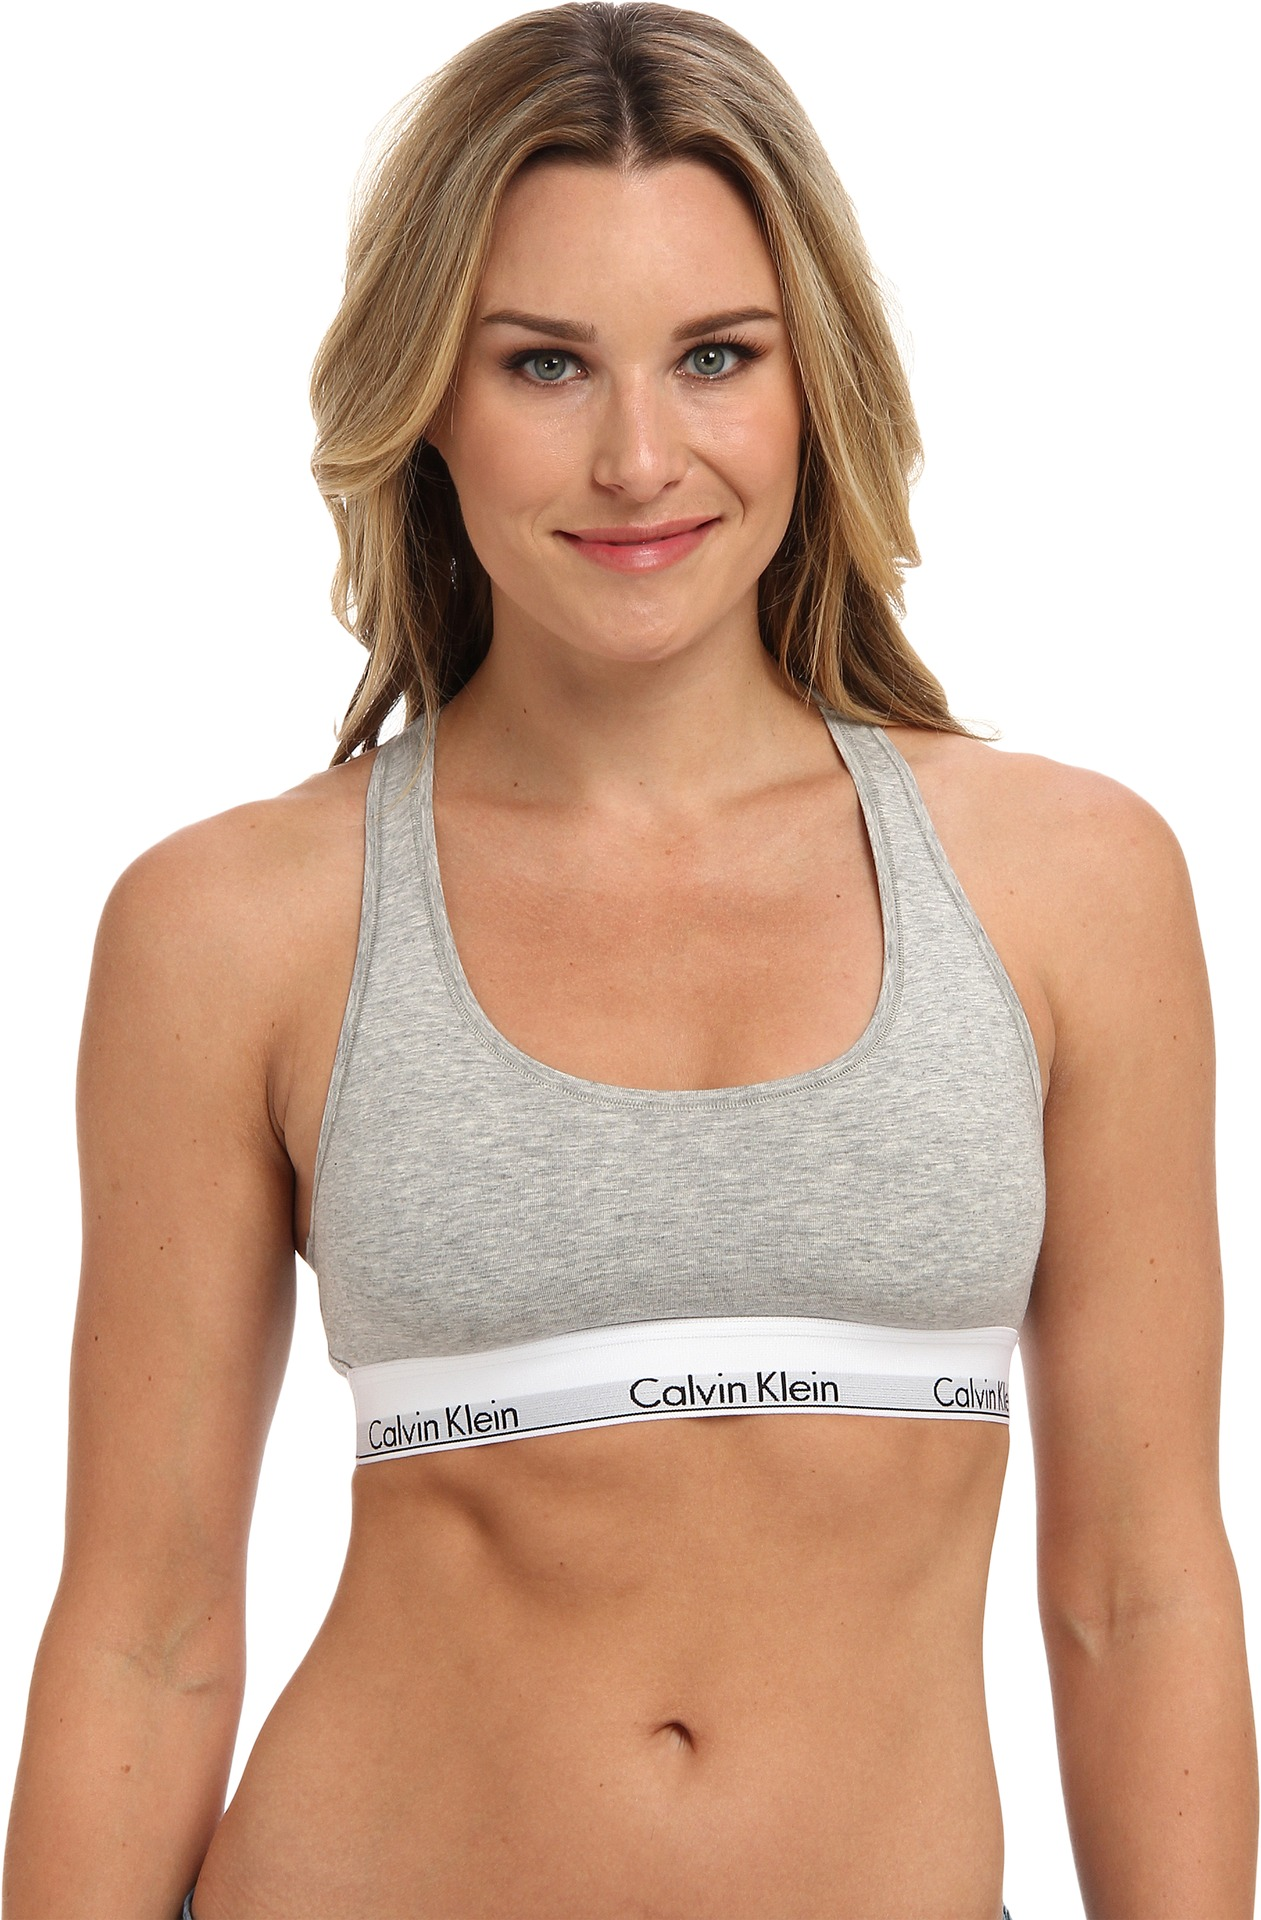 Calvin Klein Underwear Modern Cotton Bralette F3785 Grey Heather - Zappos.com Free Shipping BOTH Ways